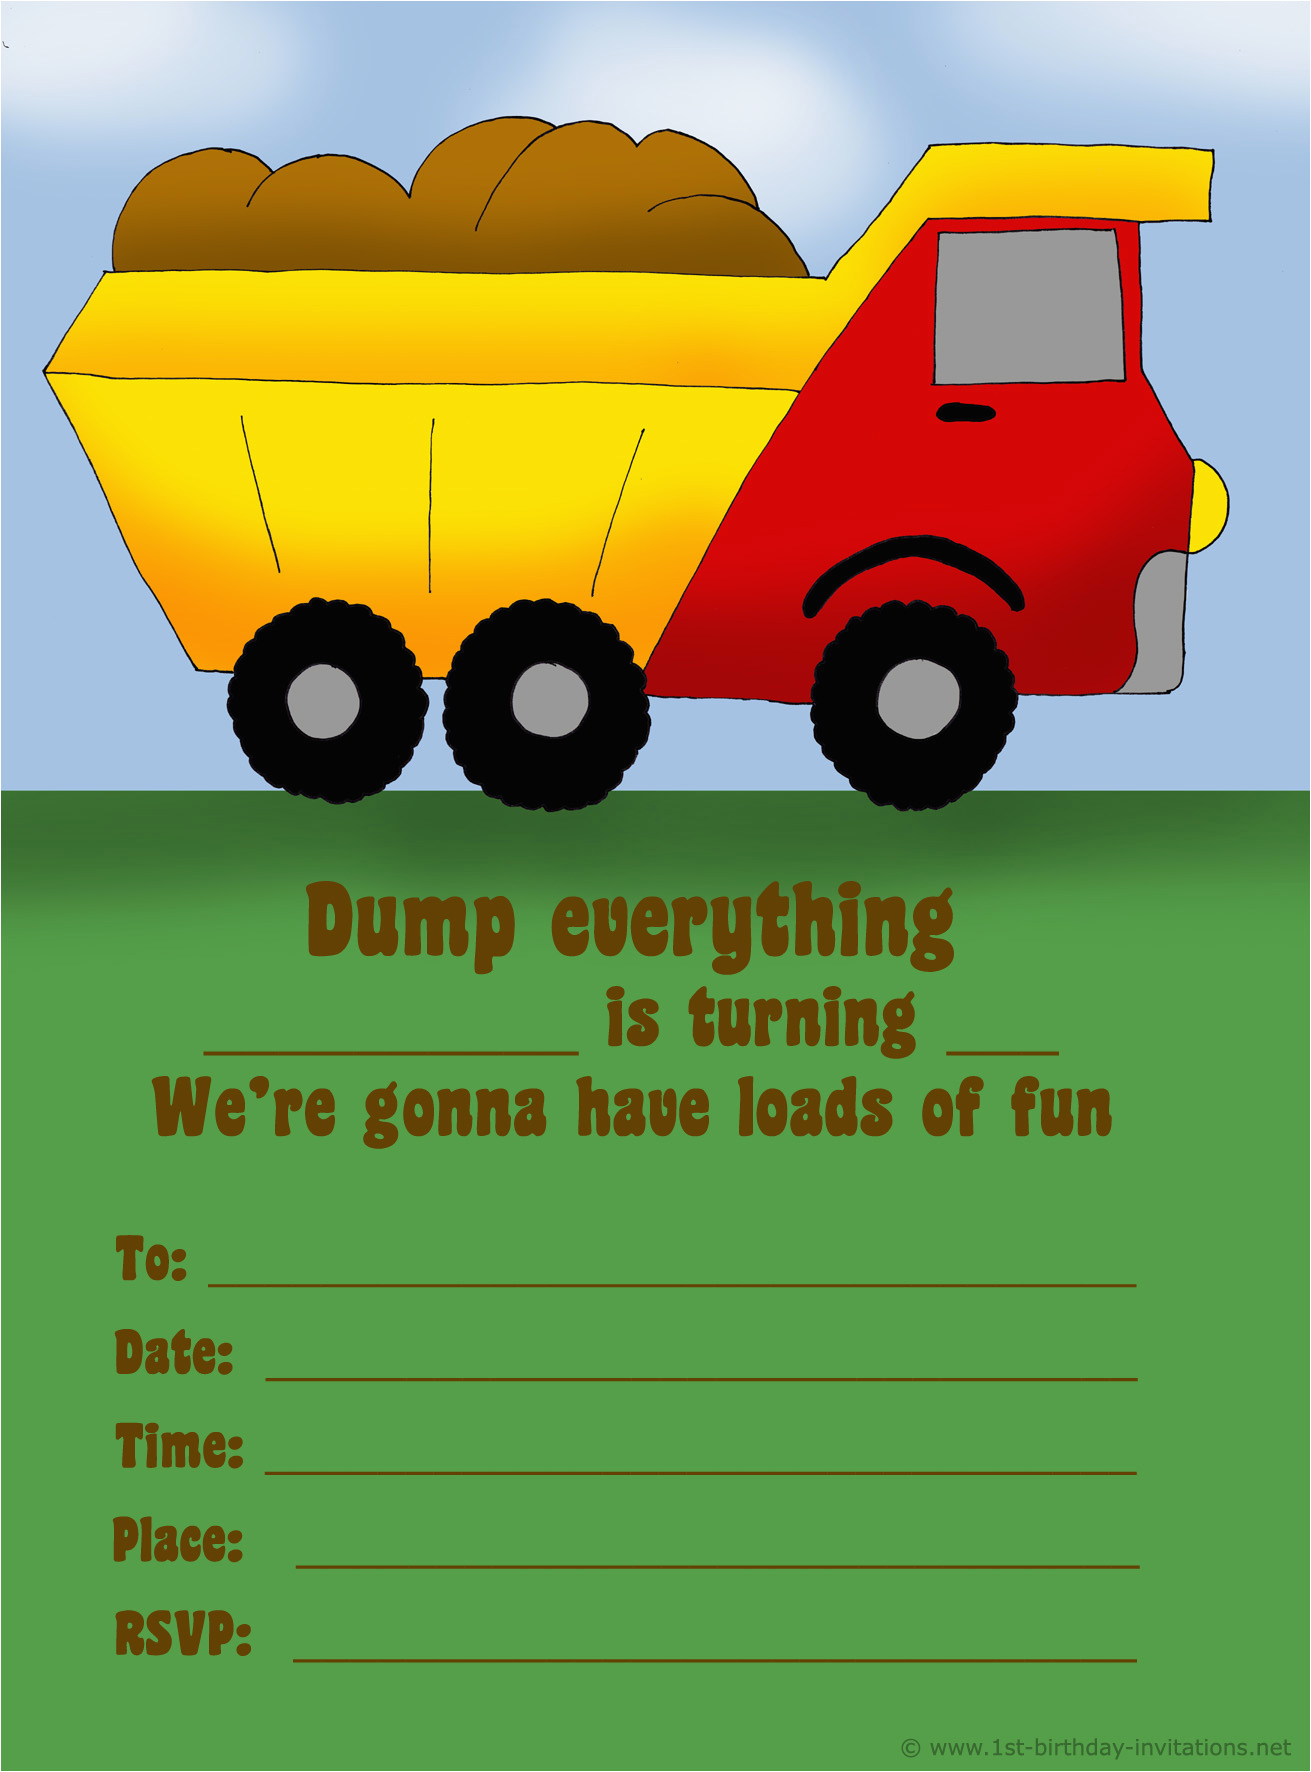 Truck themed Birthday Invitations 14 Printable Birthday Invitations Many Fun themes 1st